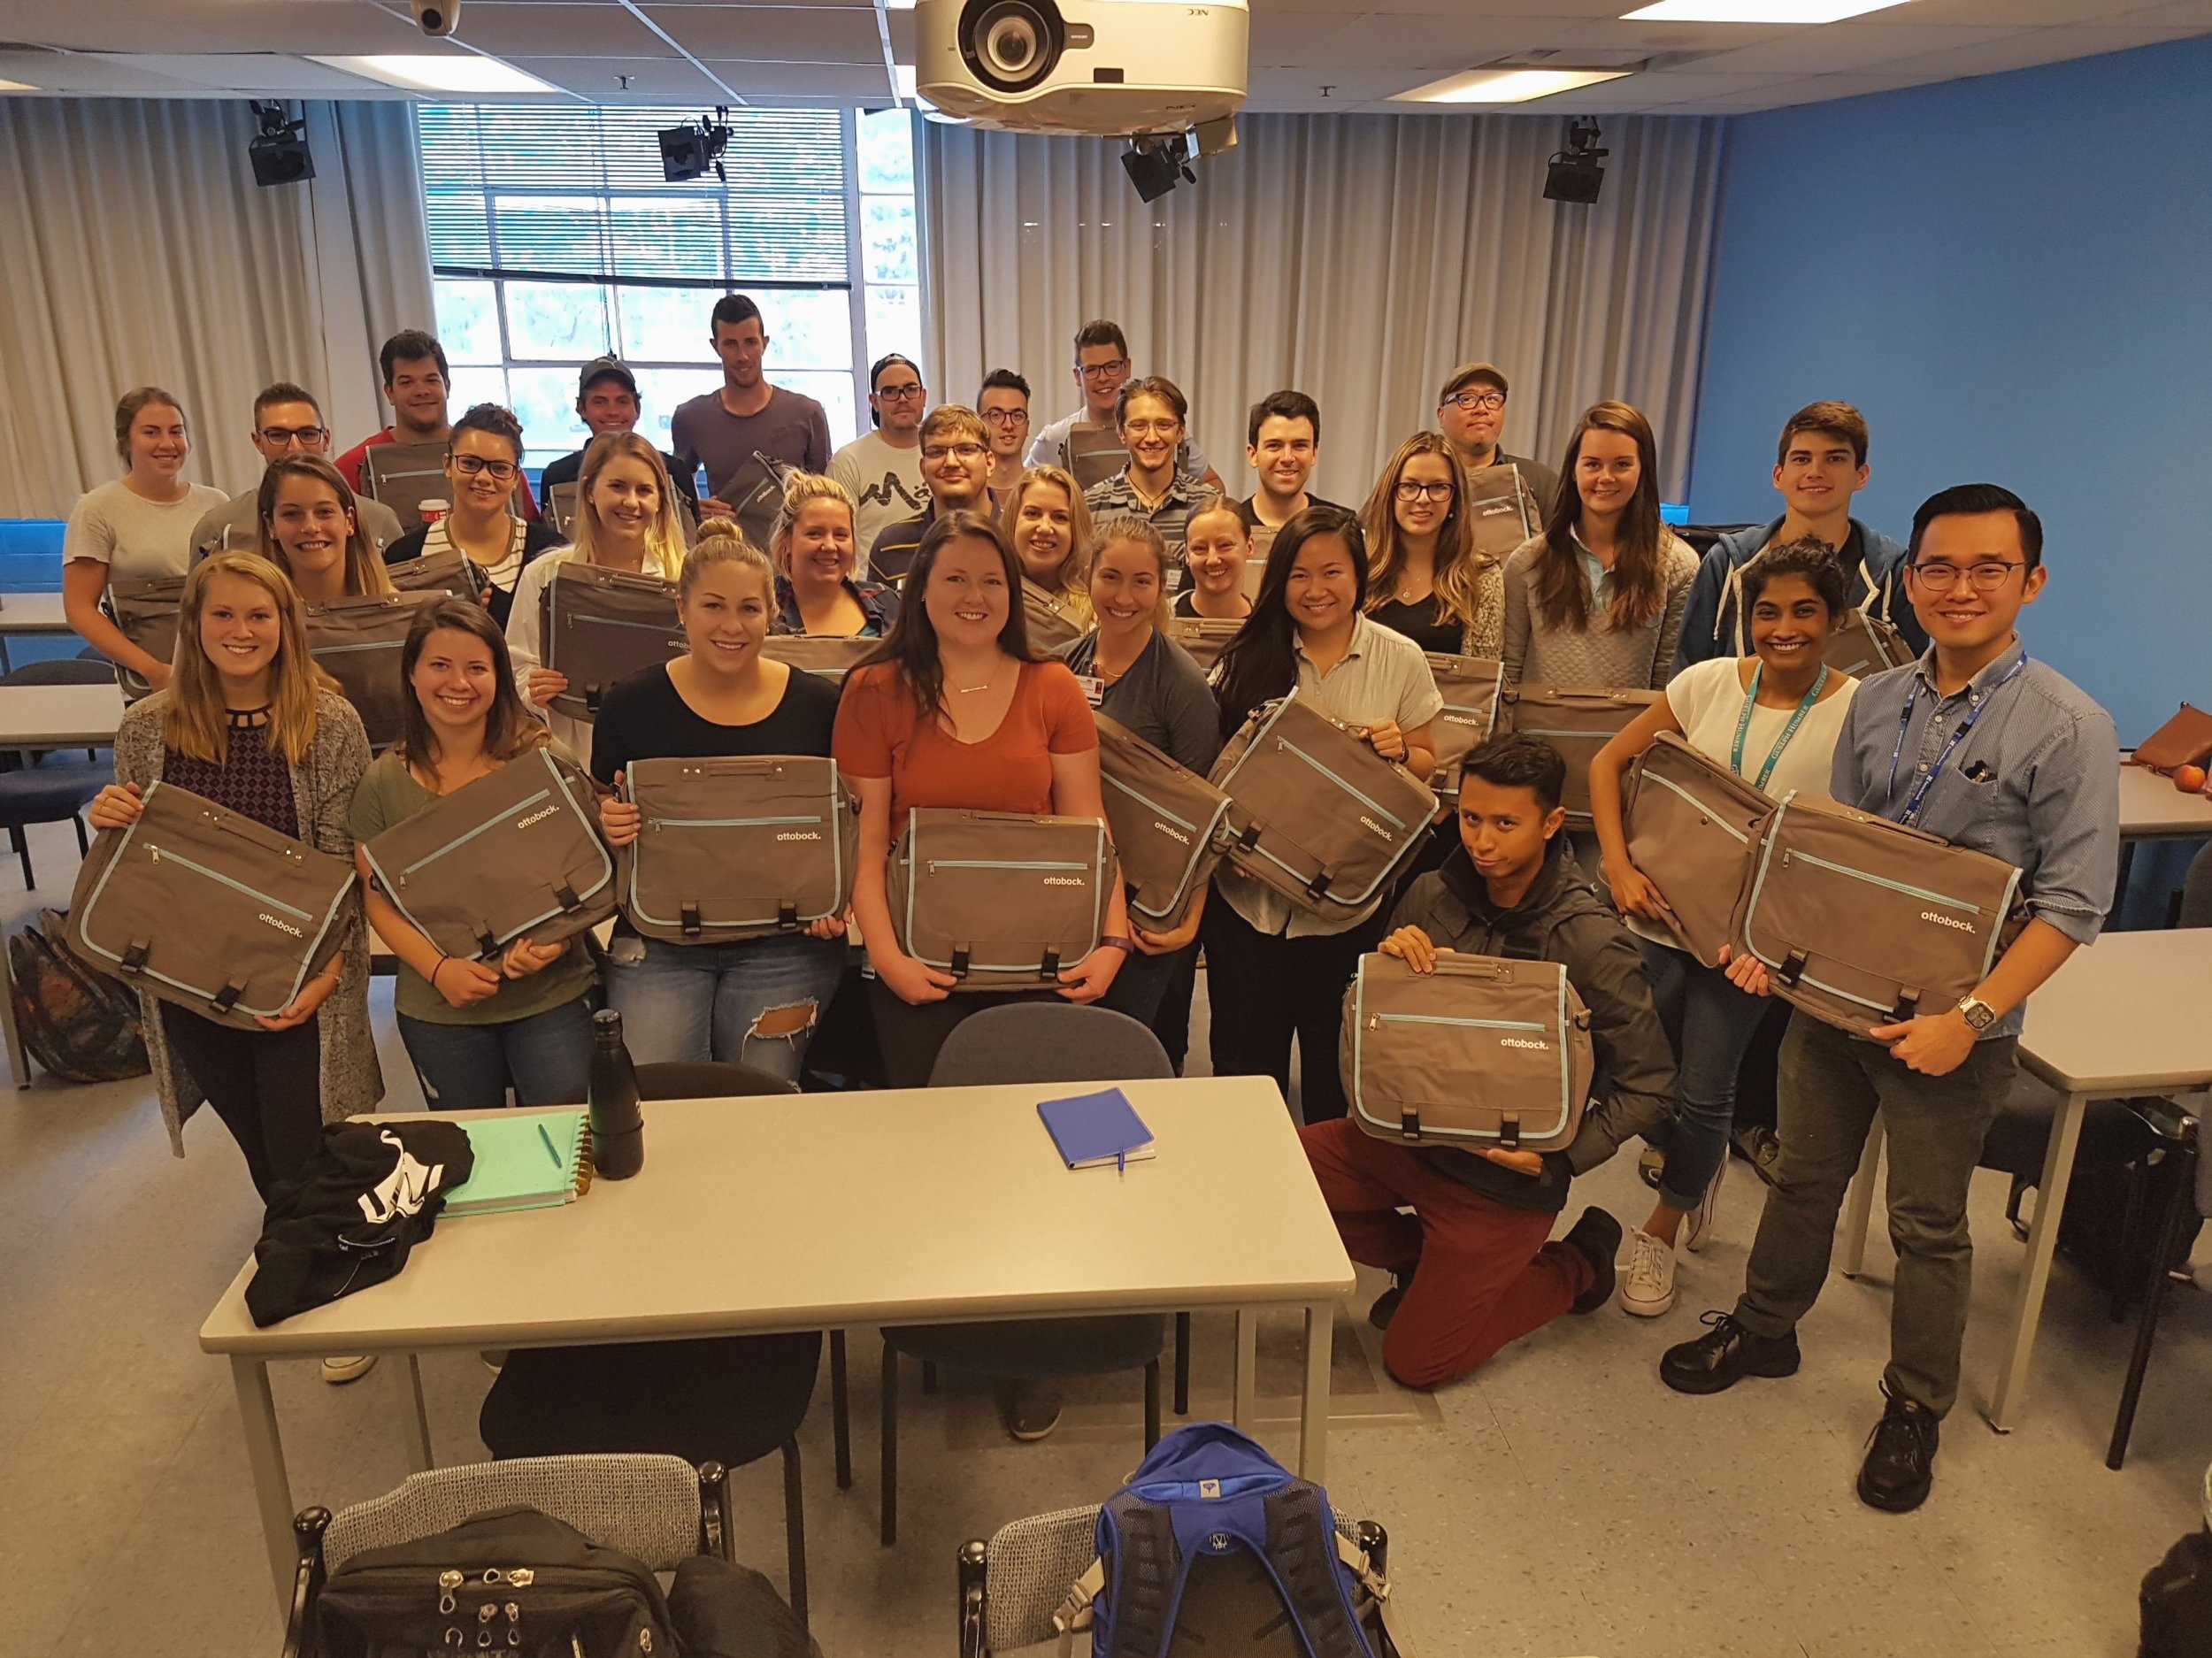 Orientation Session at Sunnybrook!  The incoming class is ready to get in the lab and start working, with the help of Ottobock welcome kits filled with some staples!